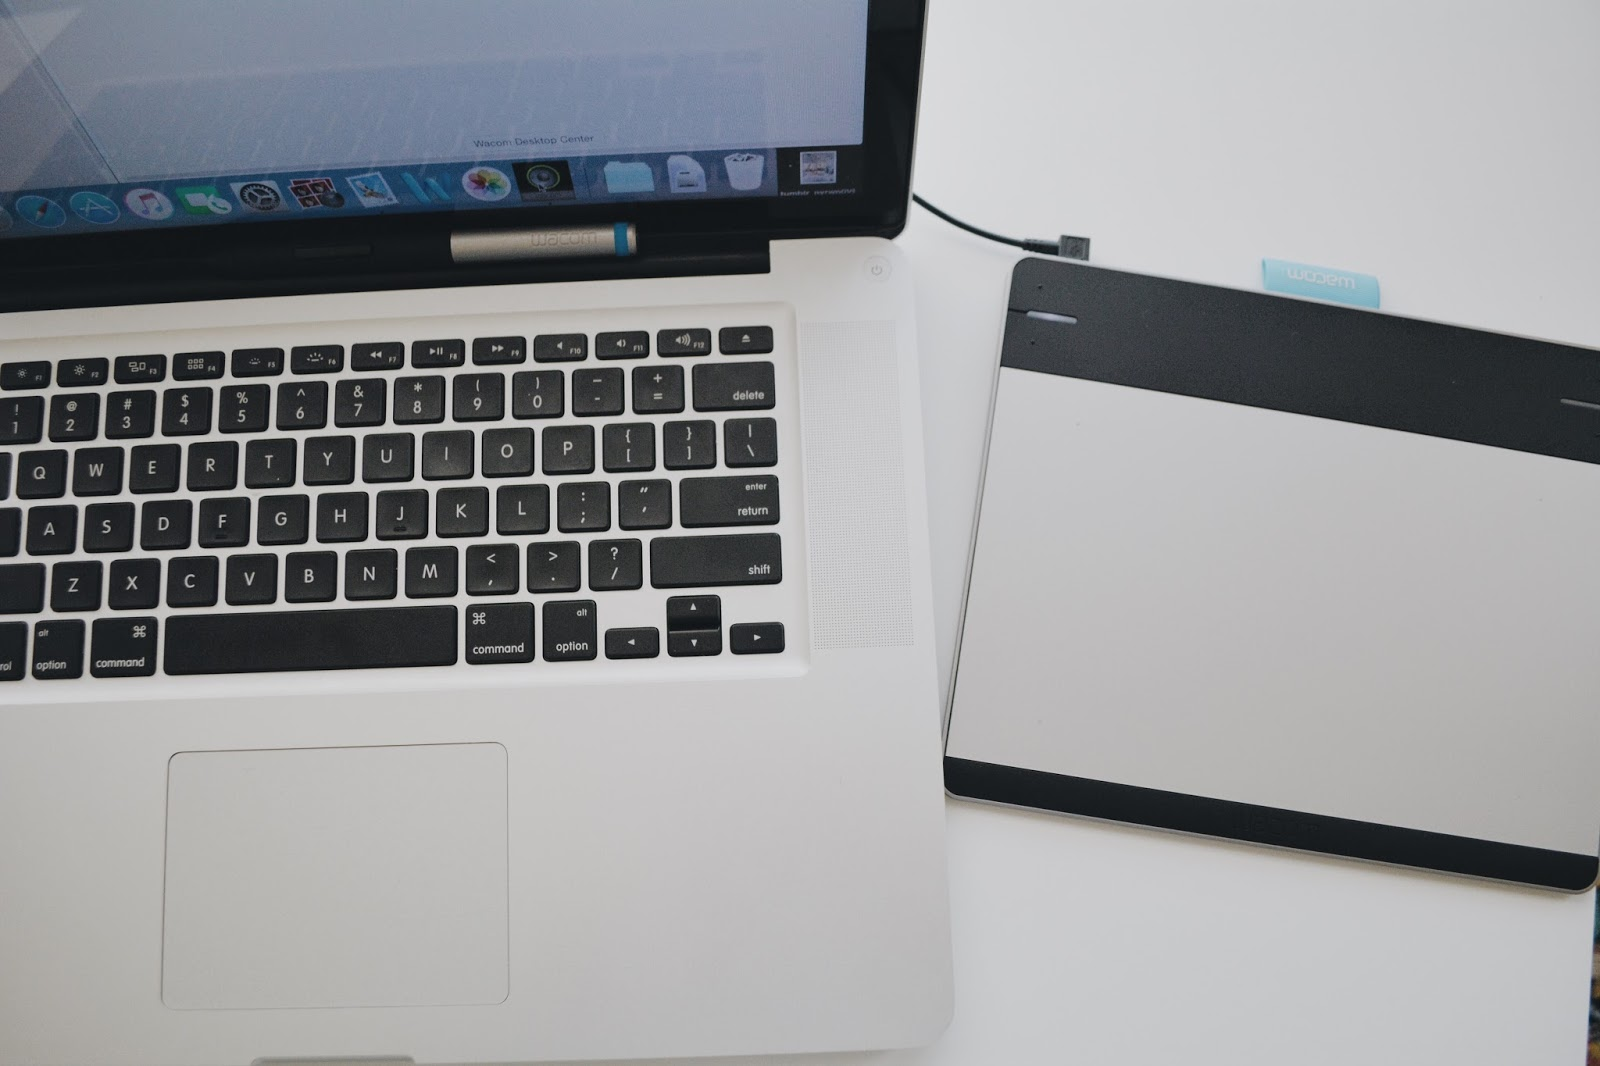 wacom tablet review for graphic designers